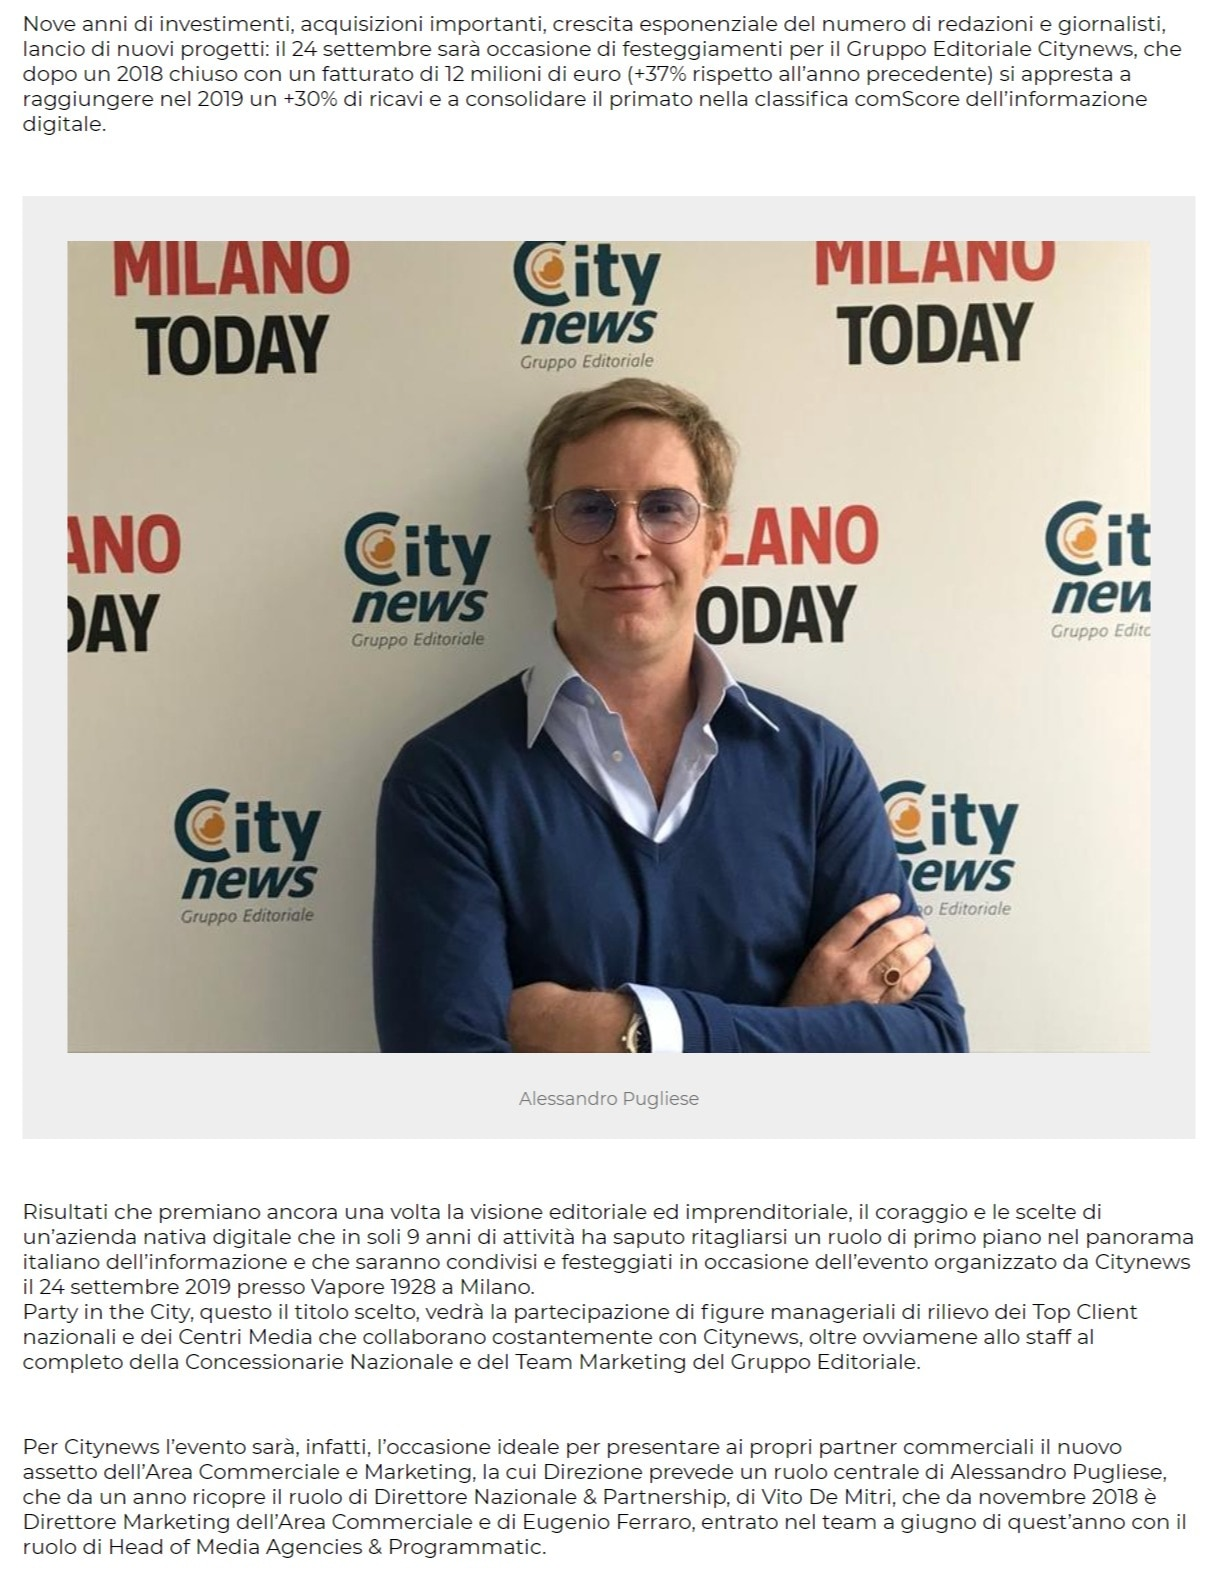 Citynews riorganizza l'Area Commerciale e Marketing - PrimaOnline, 17 settembre 2019-2